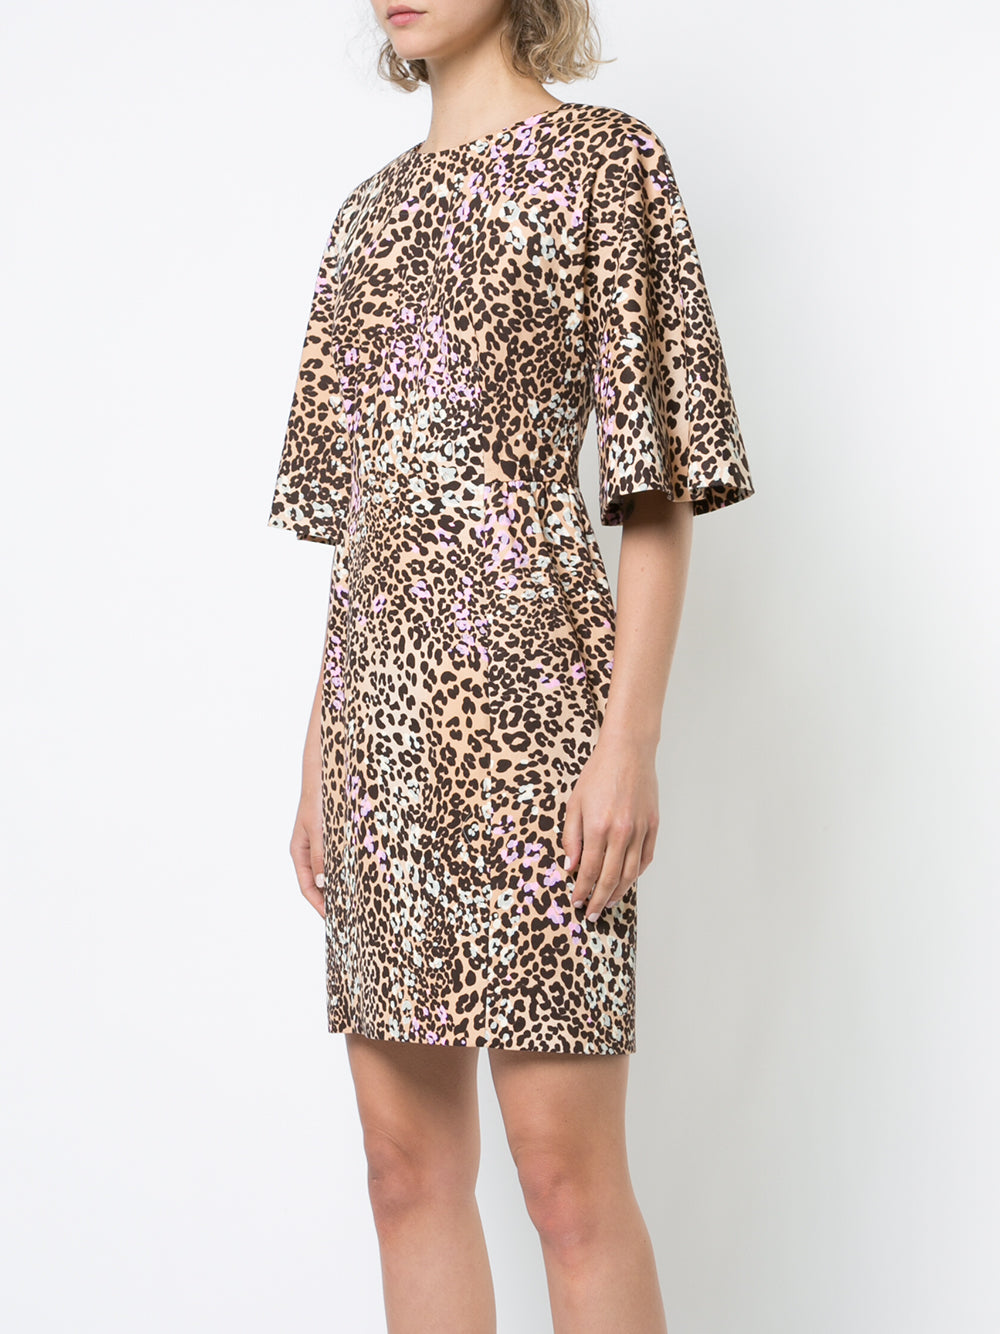 LEOPARD PRINT COTTON MINI DRESS WITH FLUTTER SLEEVE